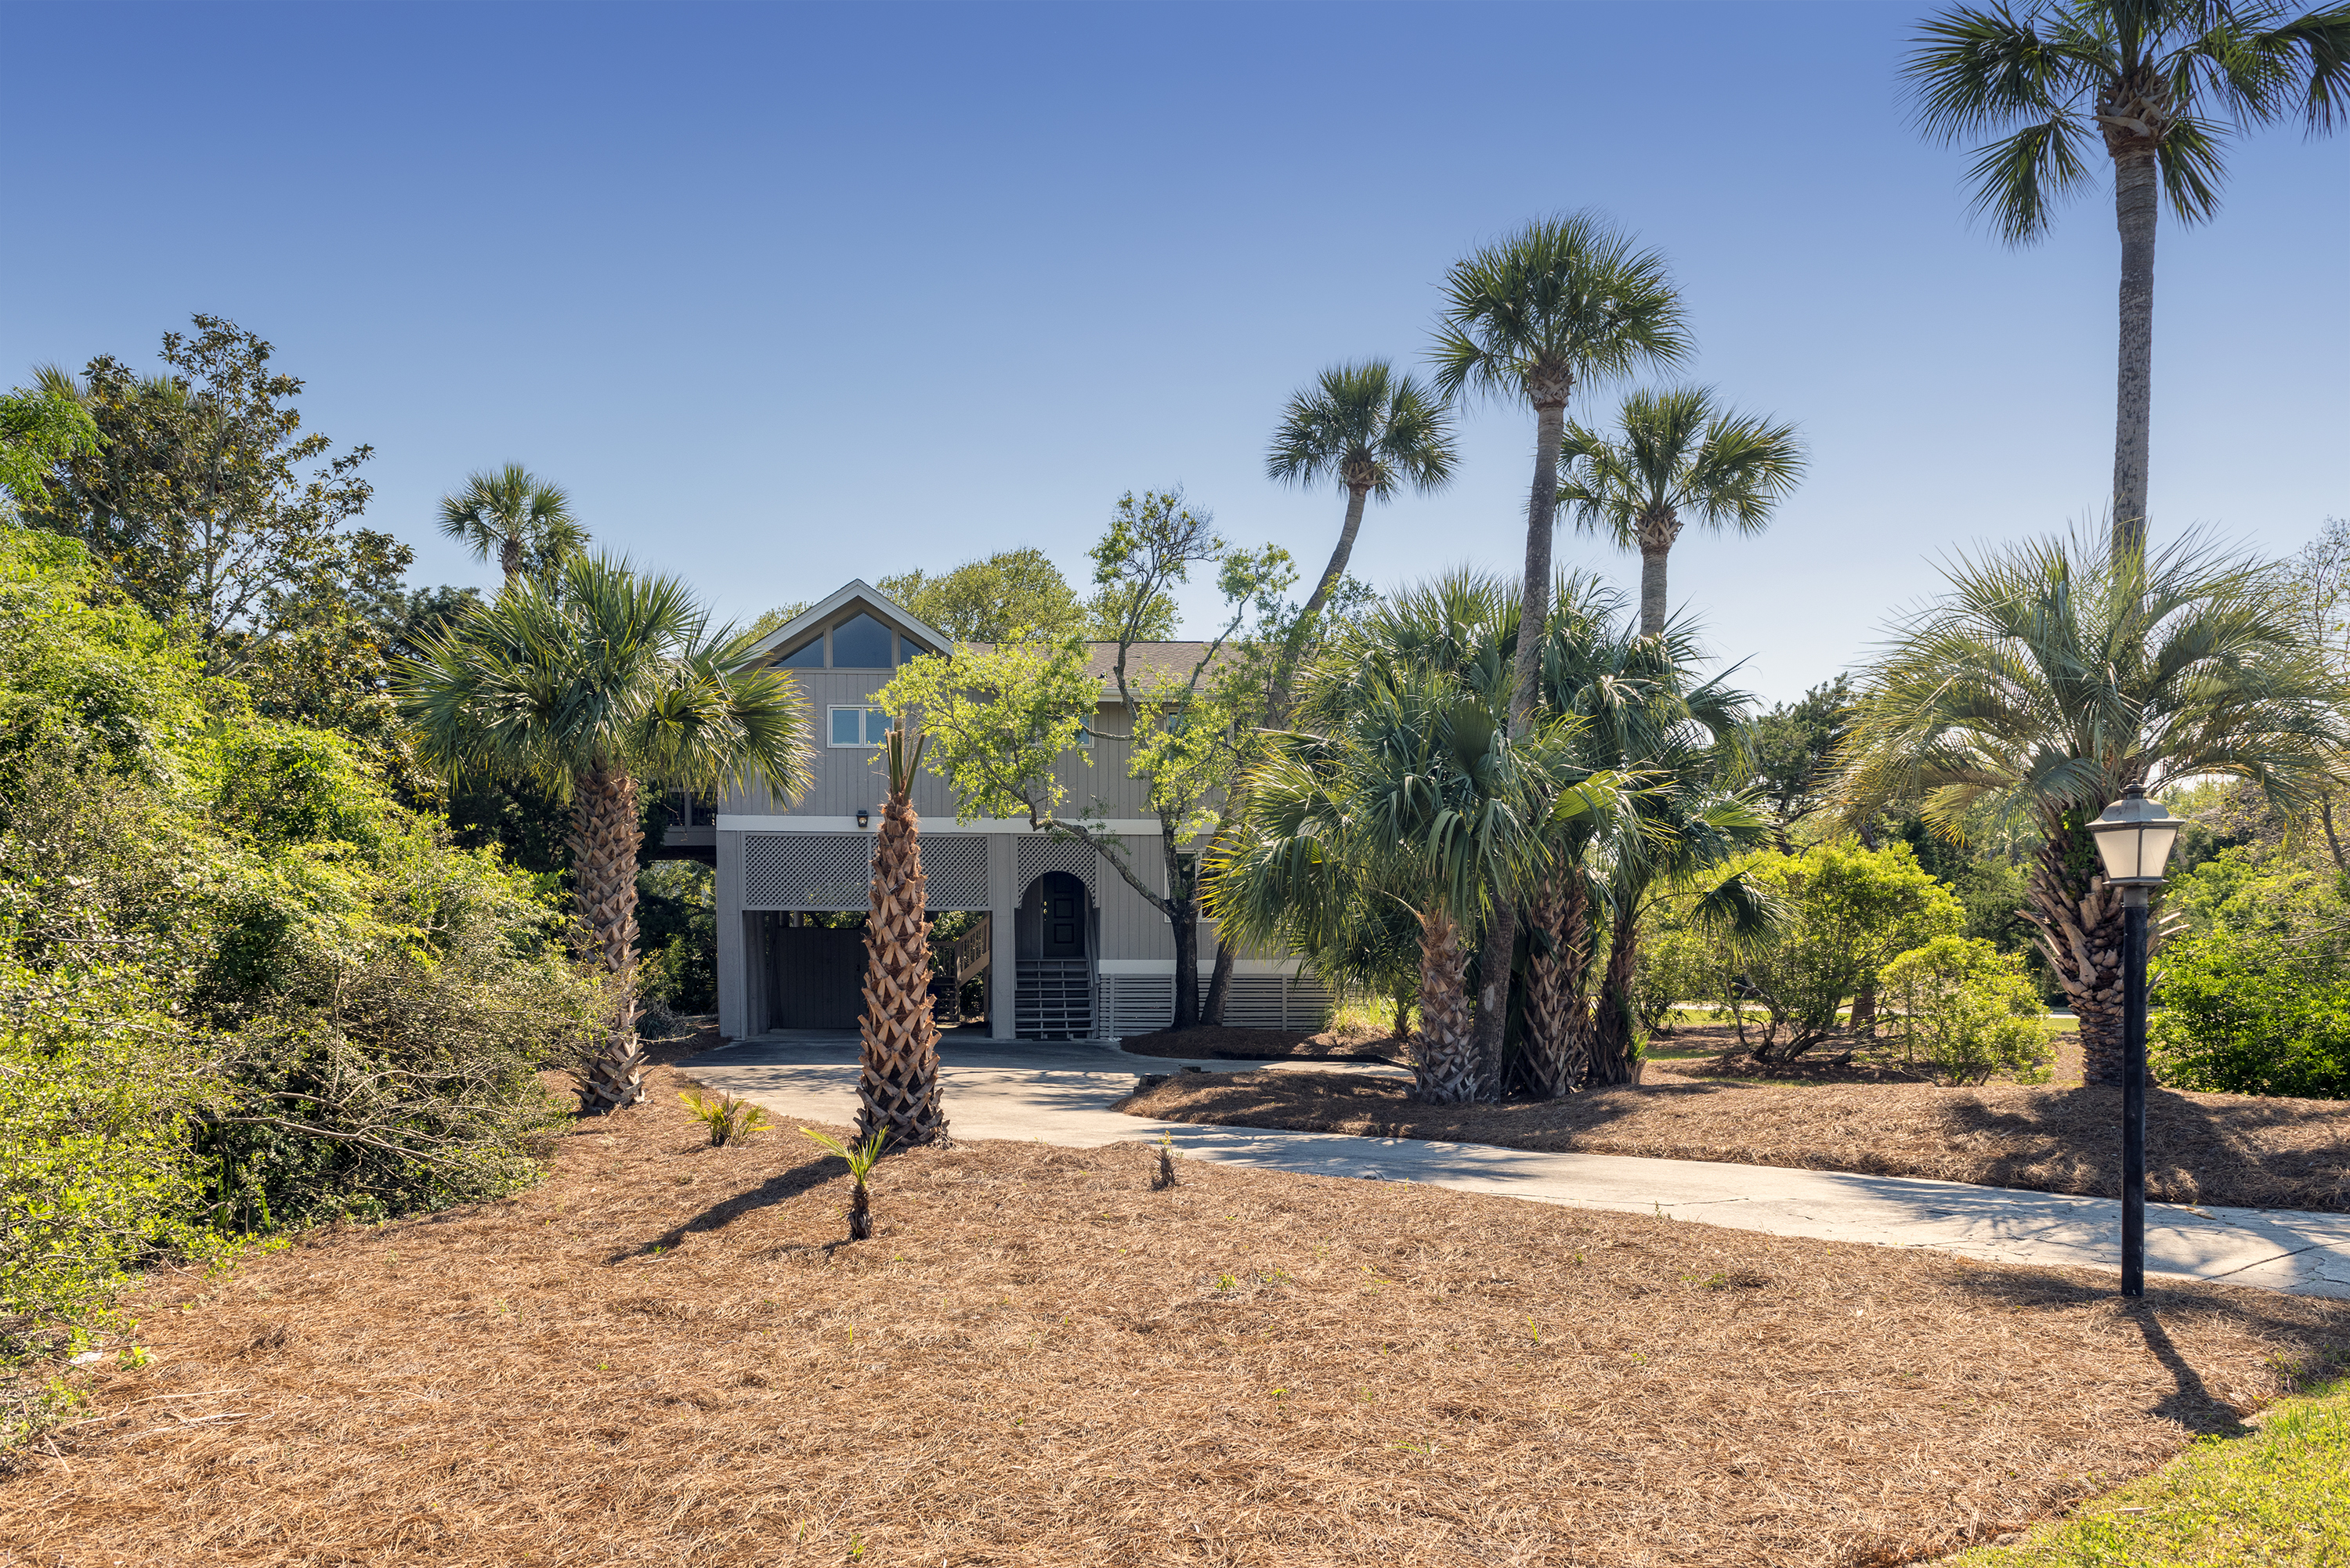 This home is 1/2 mile from the Beach Club pools, dining, and golf.